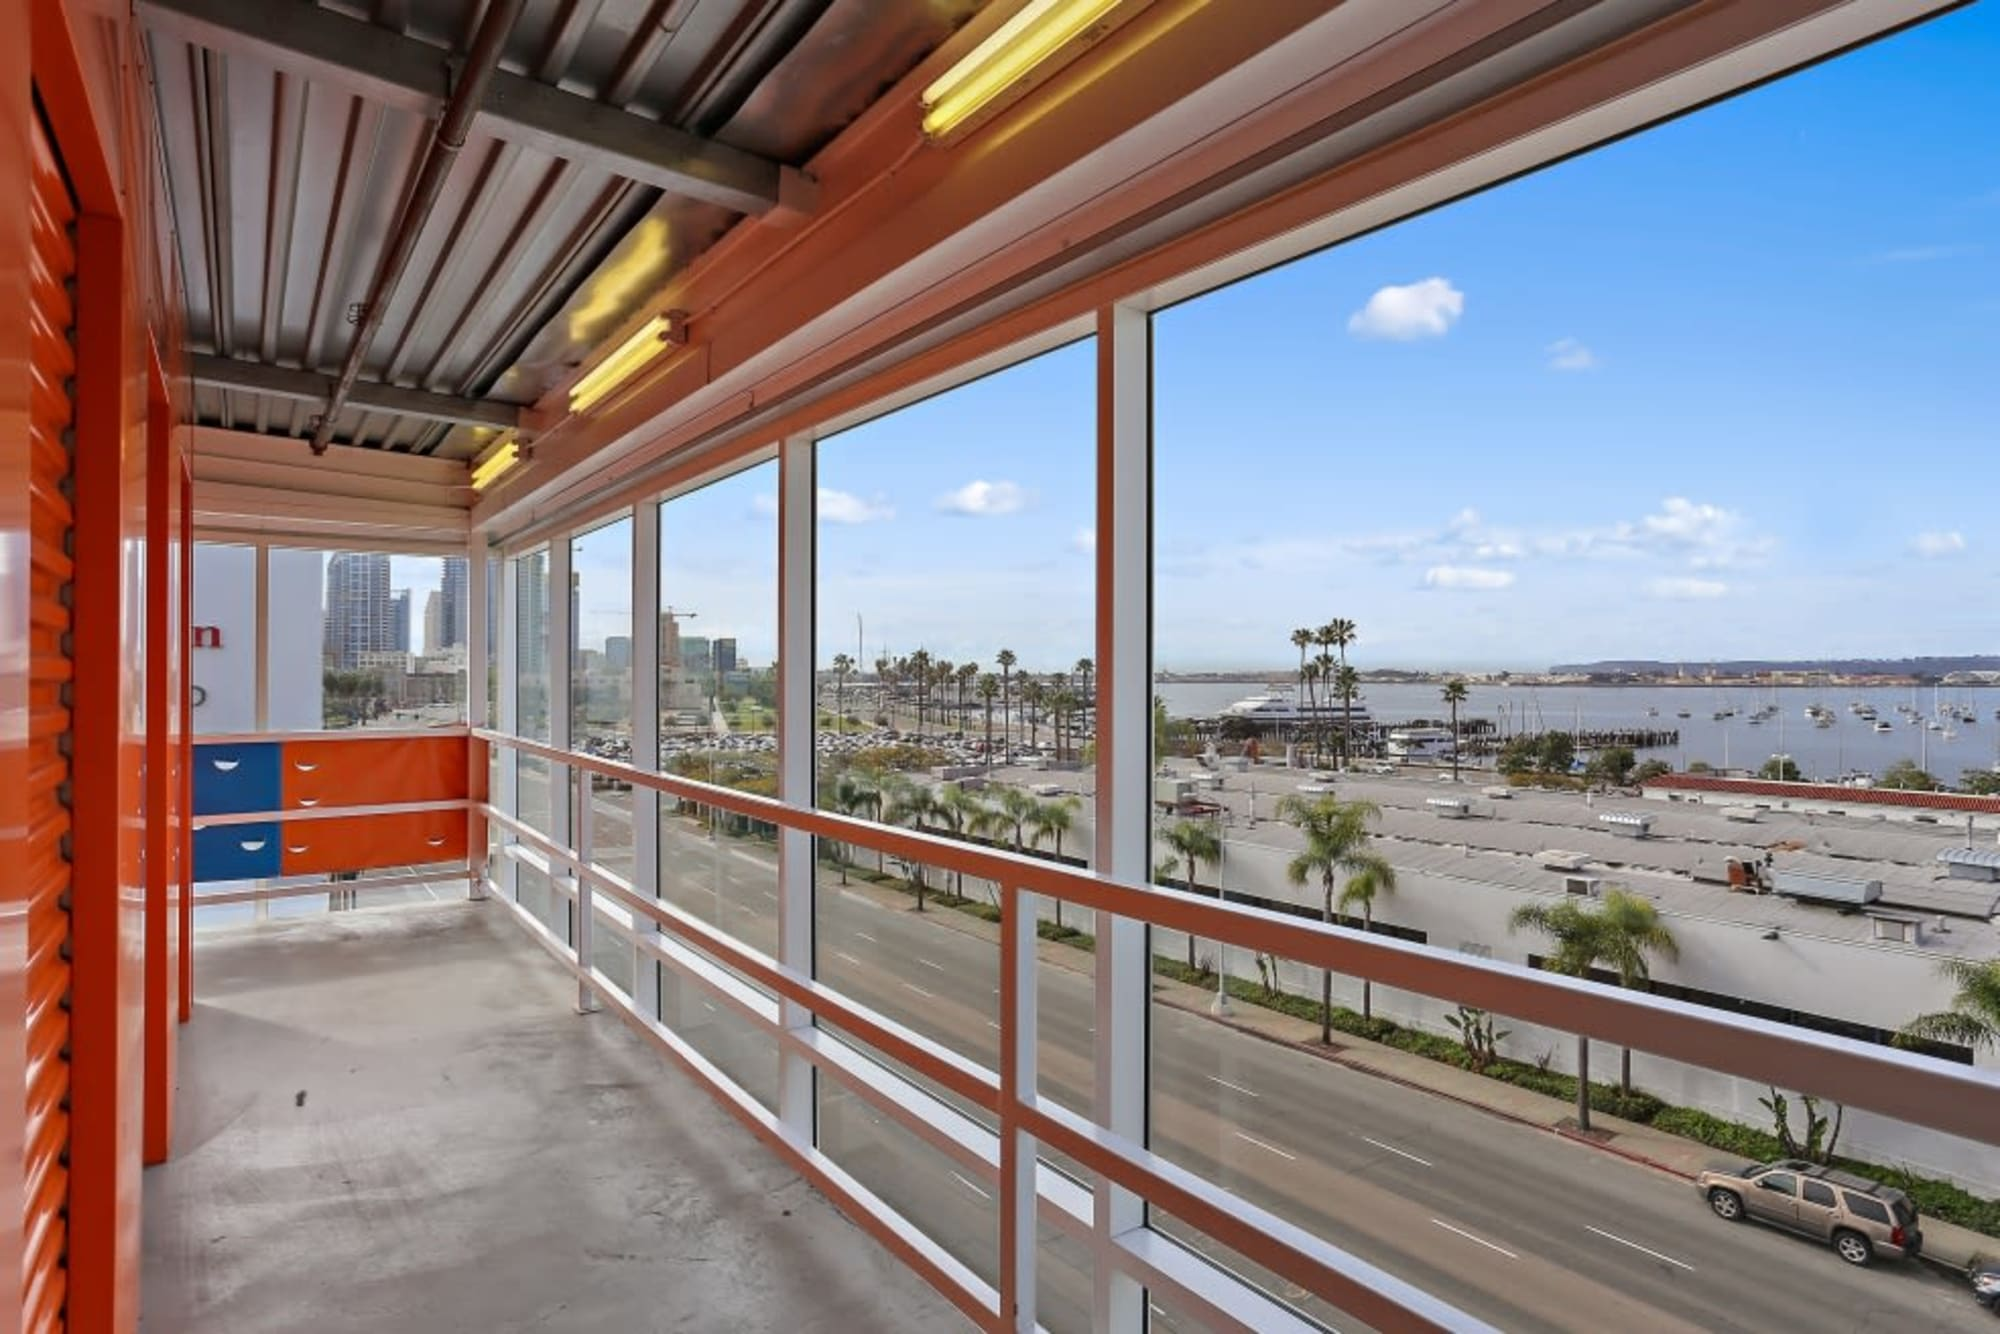 A view of the San Diego ocean from A-1 Self Storage